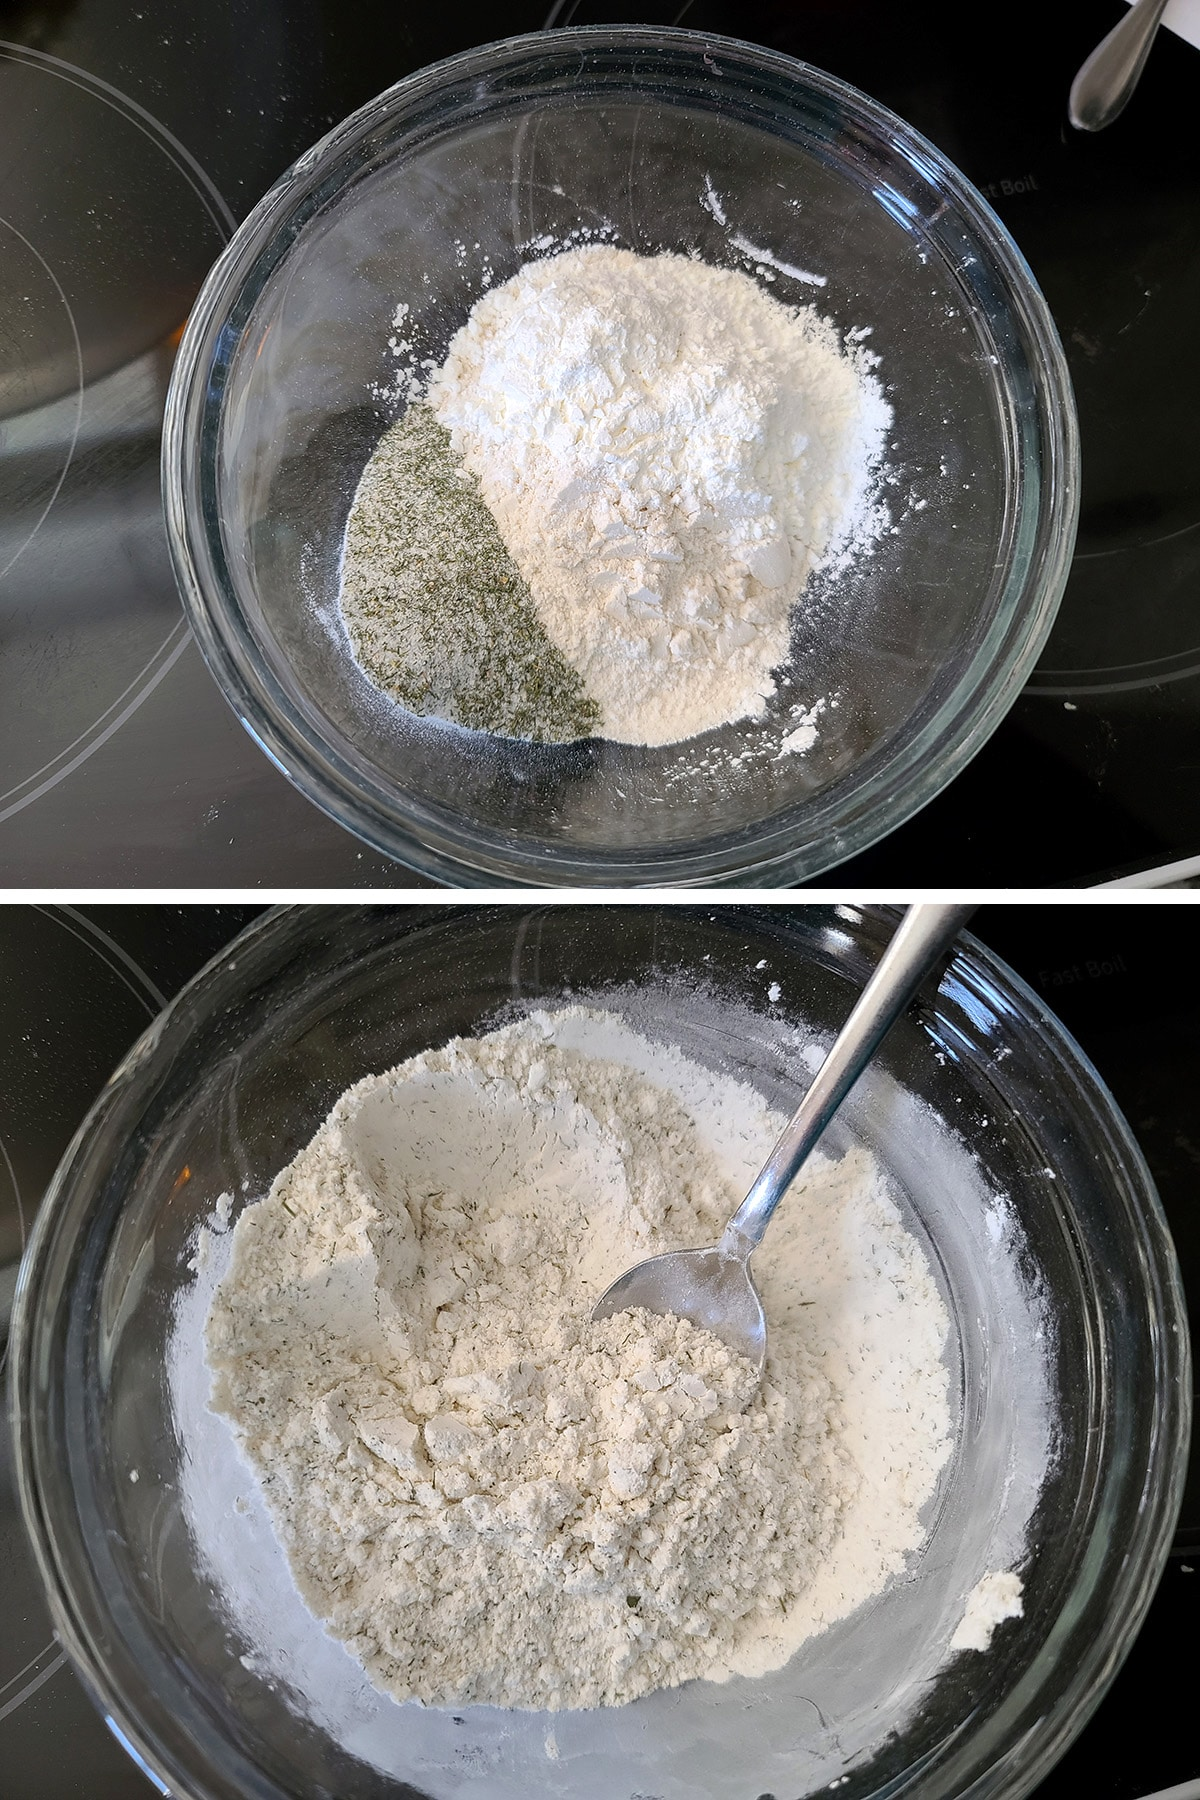 A two part compilation image, showing a glass bowl of waffle fry coating ingredients, before and after mixing them together.